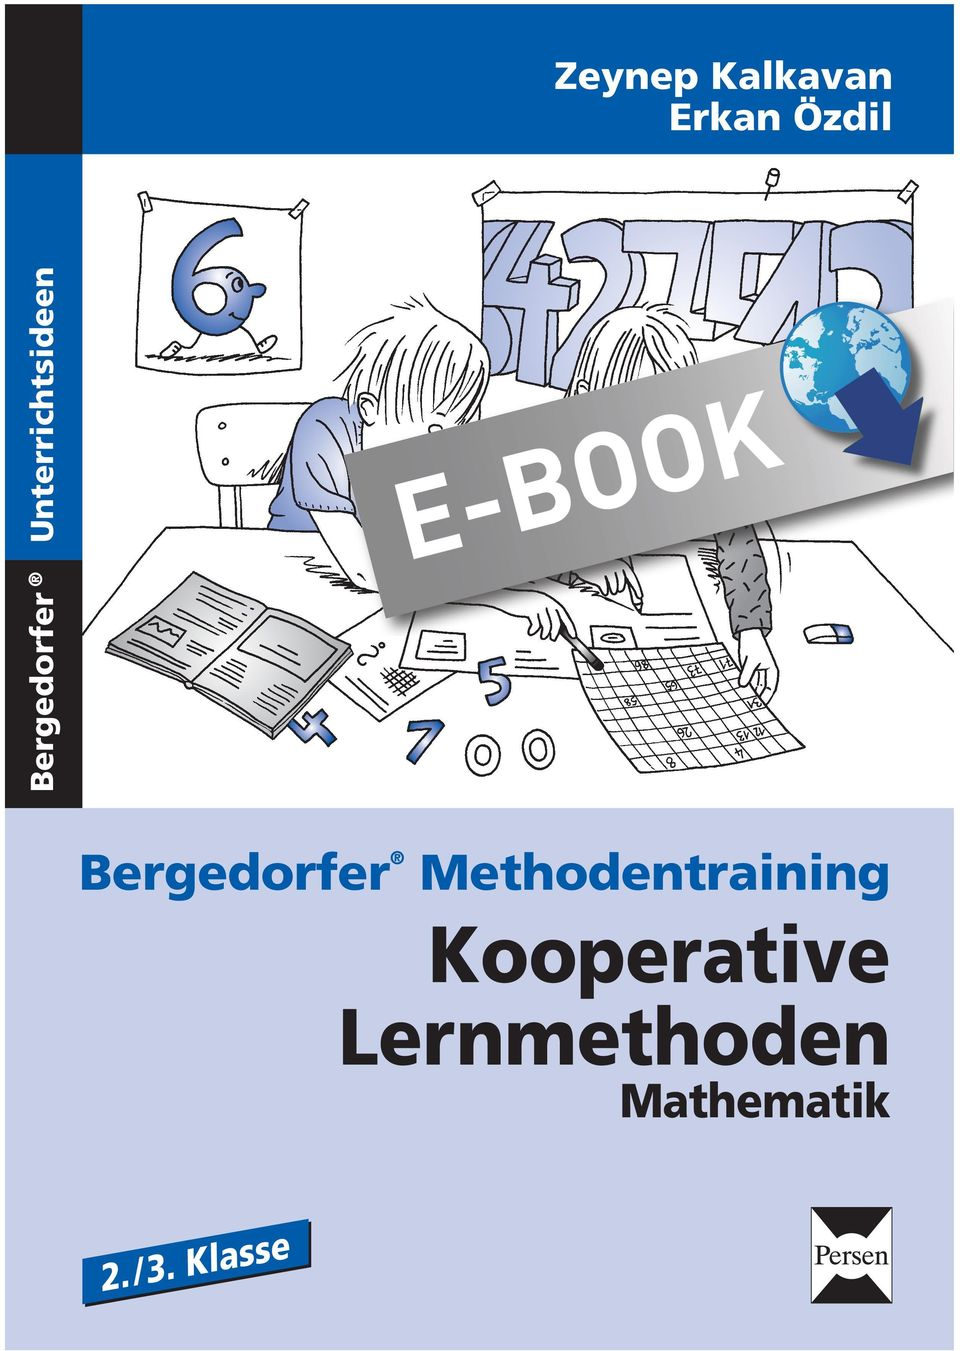 Bergedorfer Methodentraining